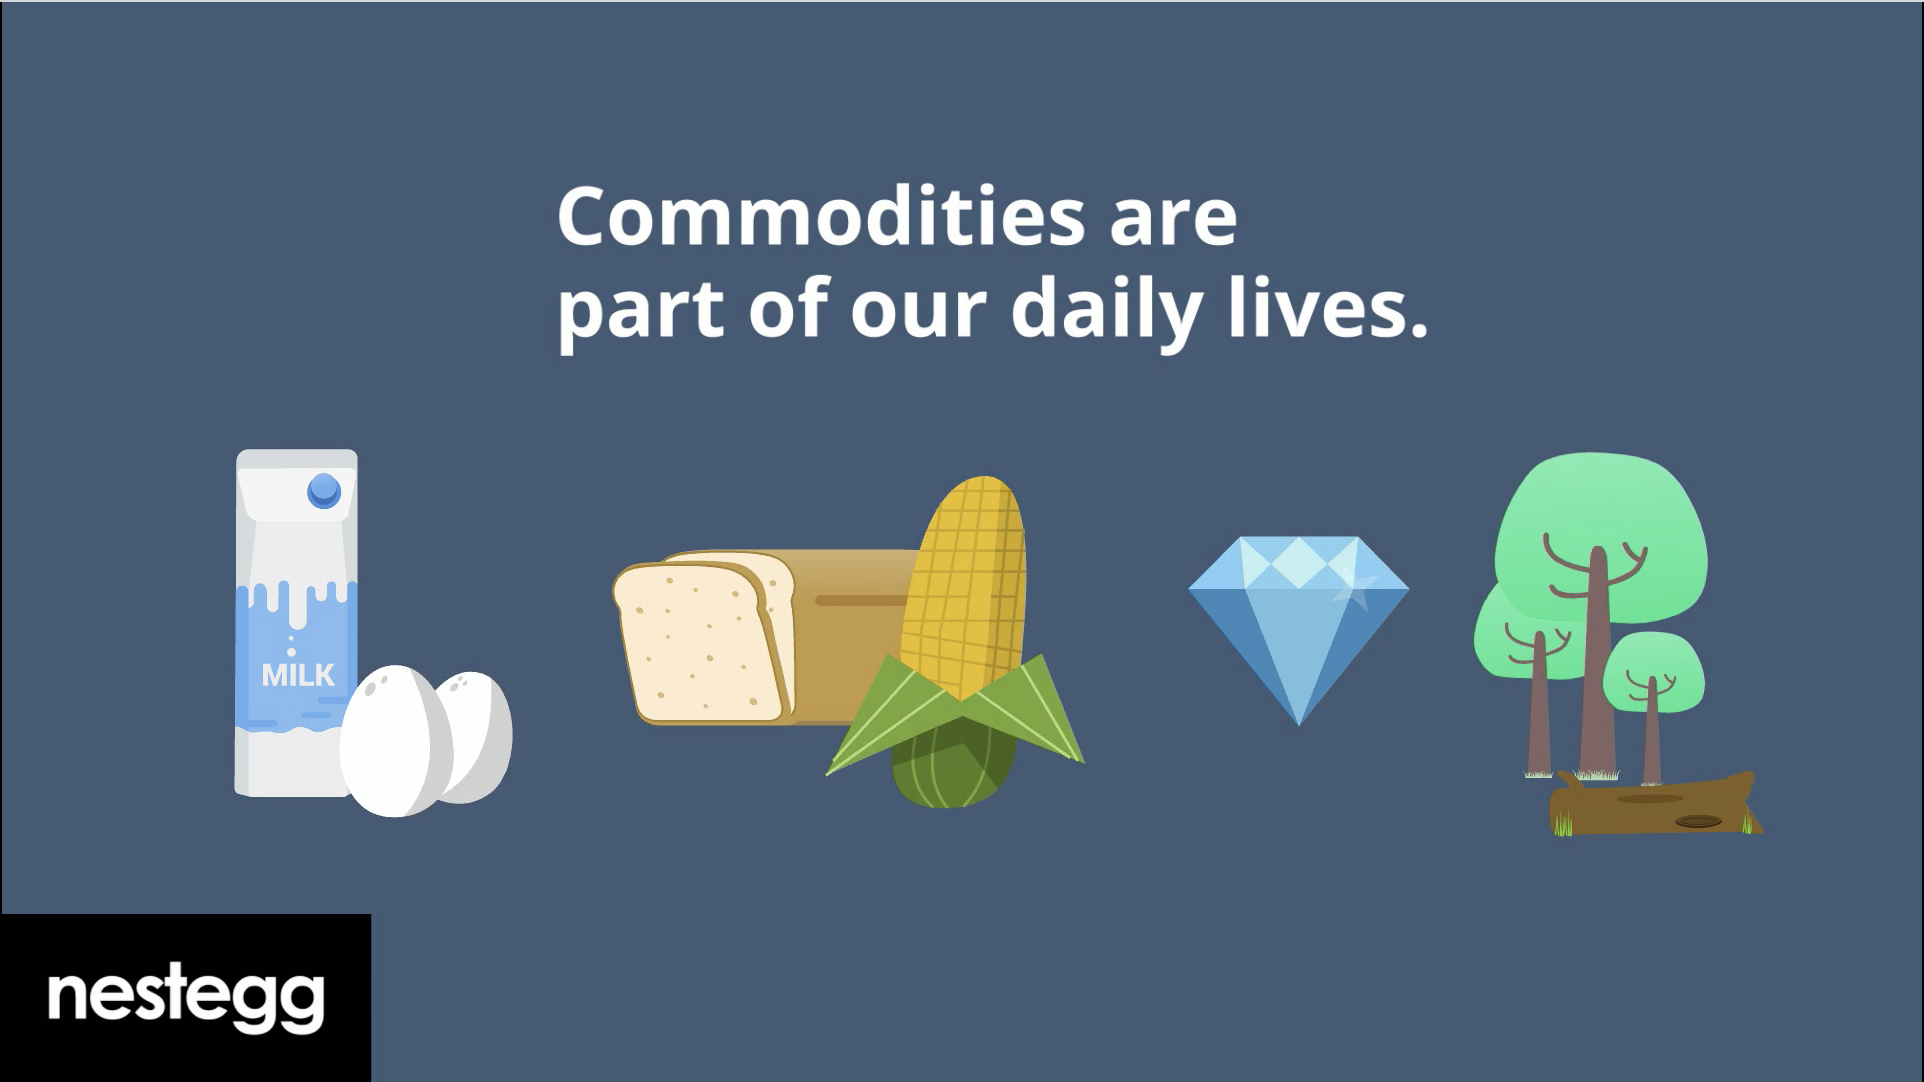 What is a commodity?